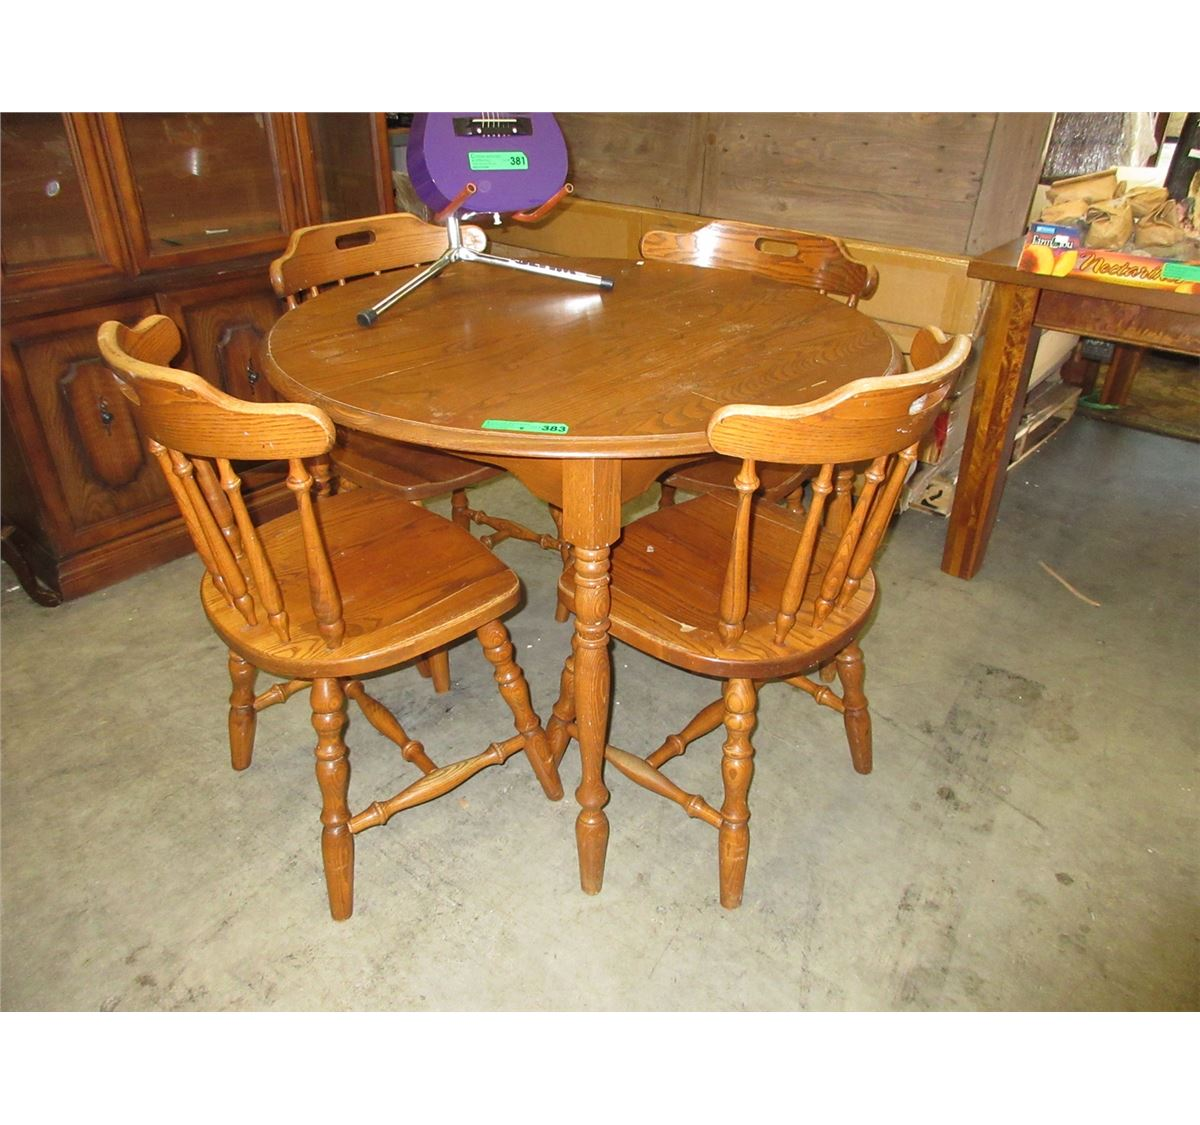 Used round wood dining table with 4 chairs for Wood round dining table for 4